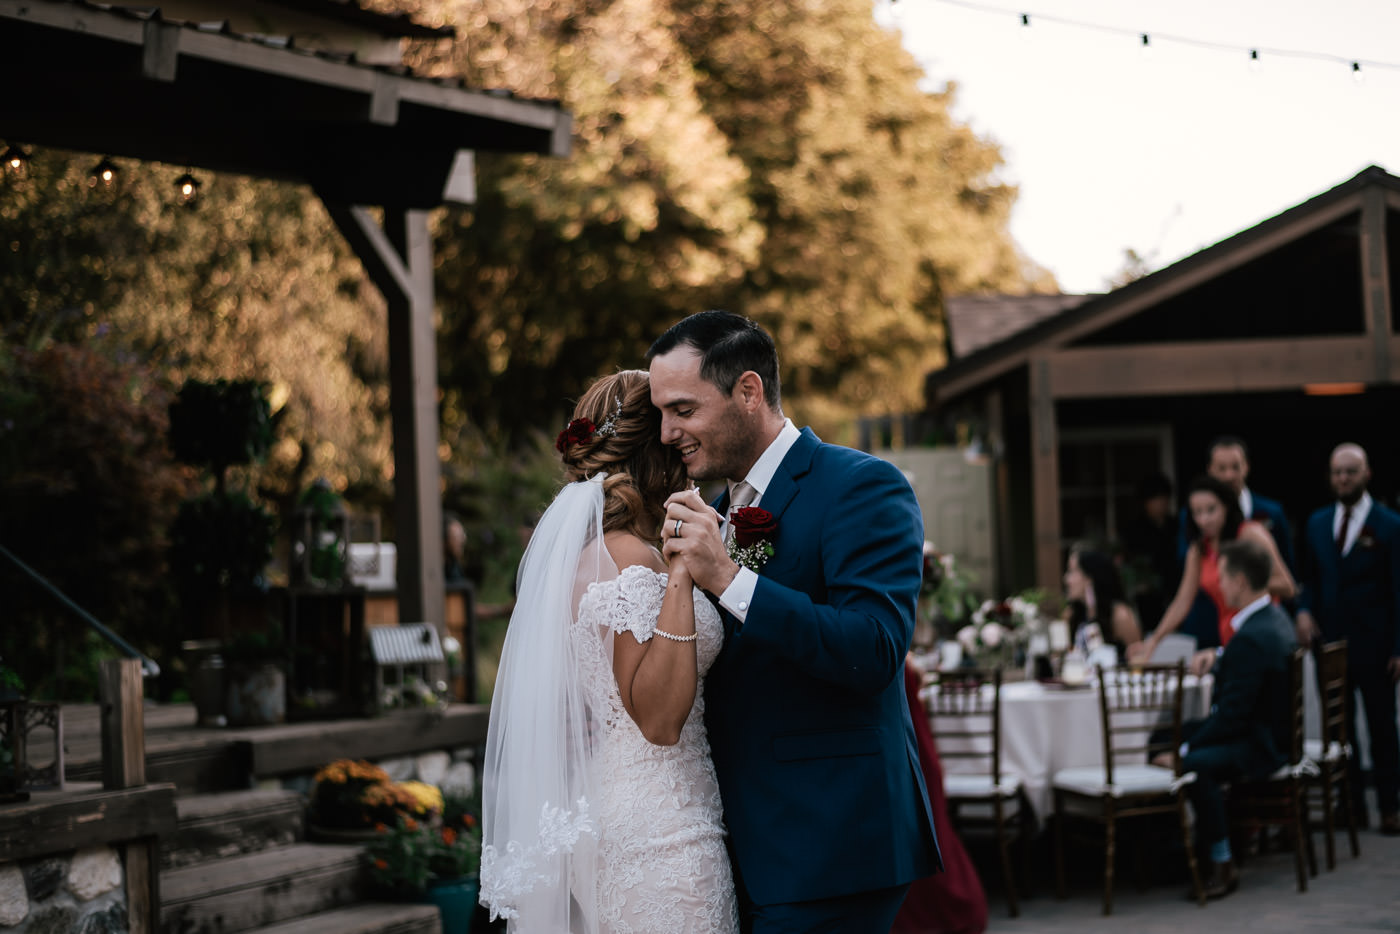 Nothing but smiles on this newlywed couples face during their first dance.